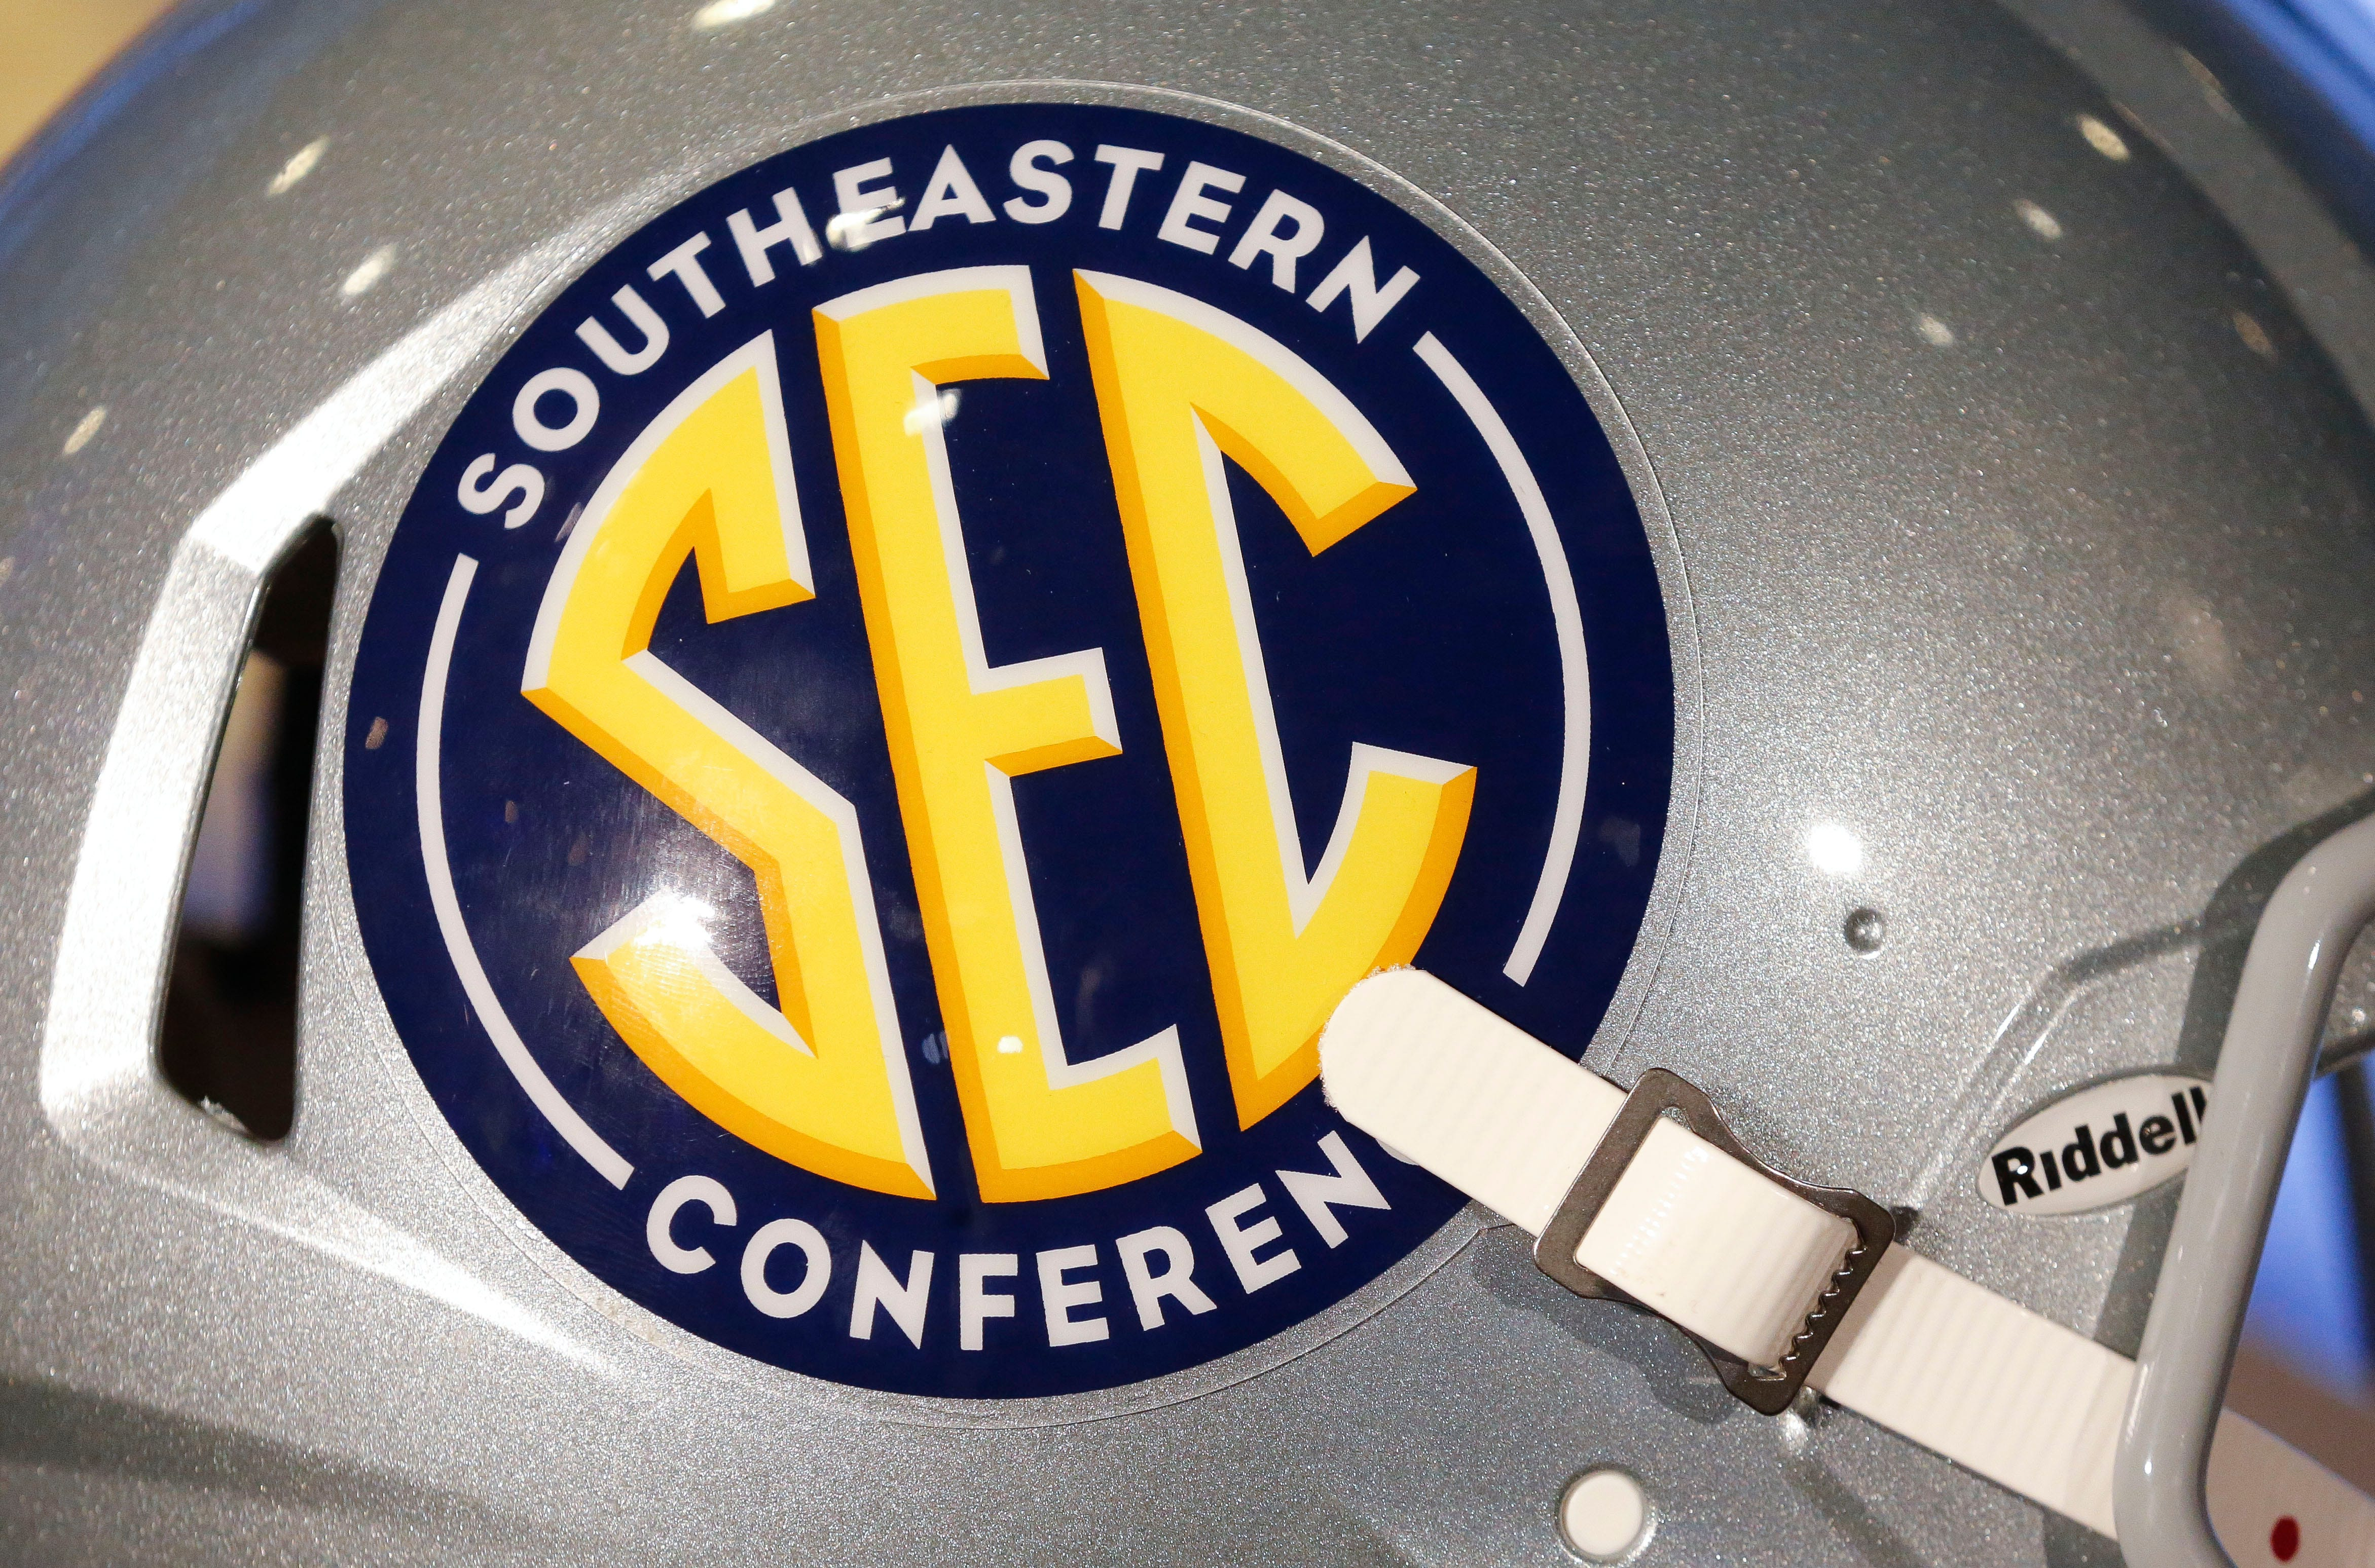 tennessean.com - Blake Toppmeyer, The Tennessean - If SEC passes on Texas and Oklahoma, it risks its spot at head of college sports' table | Toppmeyer